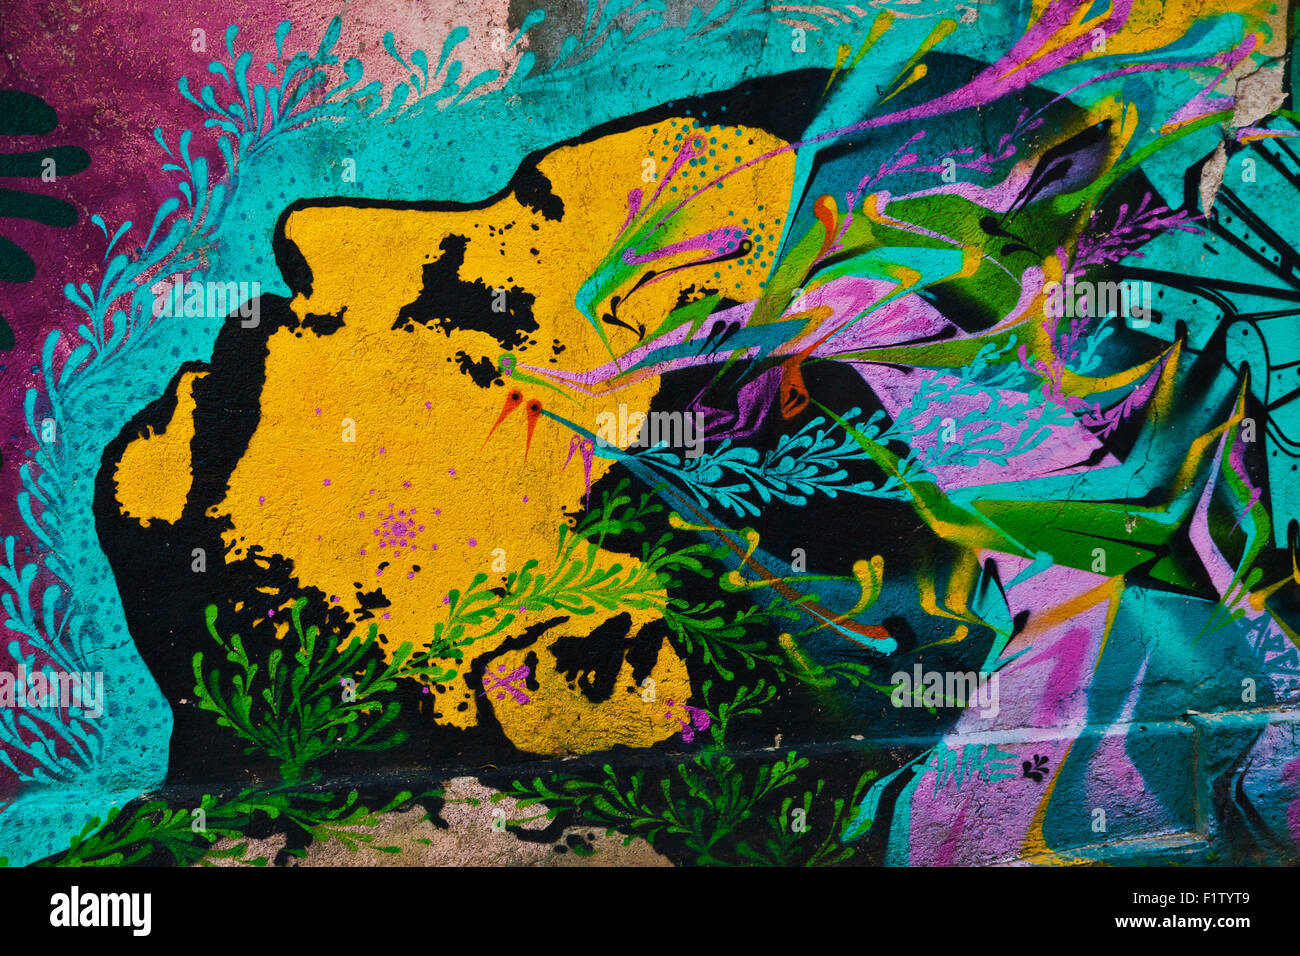 Mexican Wall Art Stock Photos & Mexican Wall Art Stock Images - Alamy